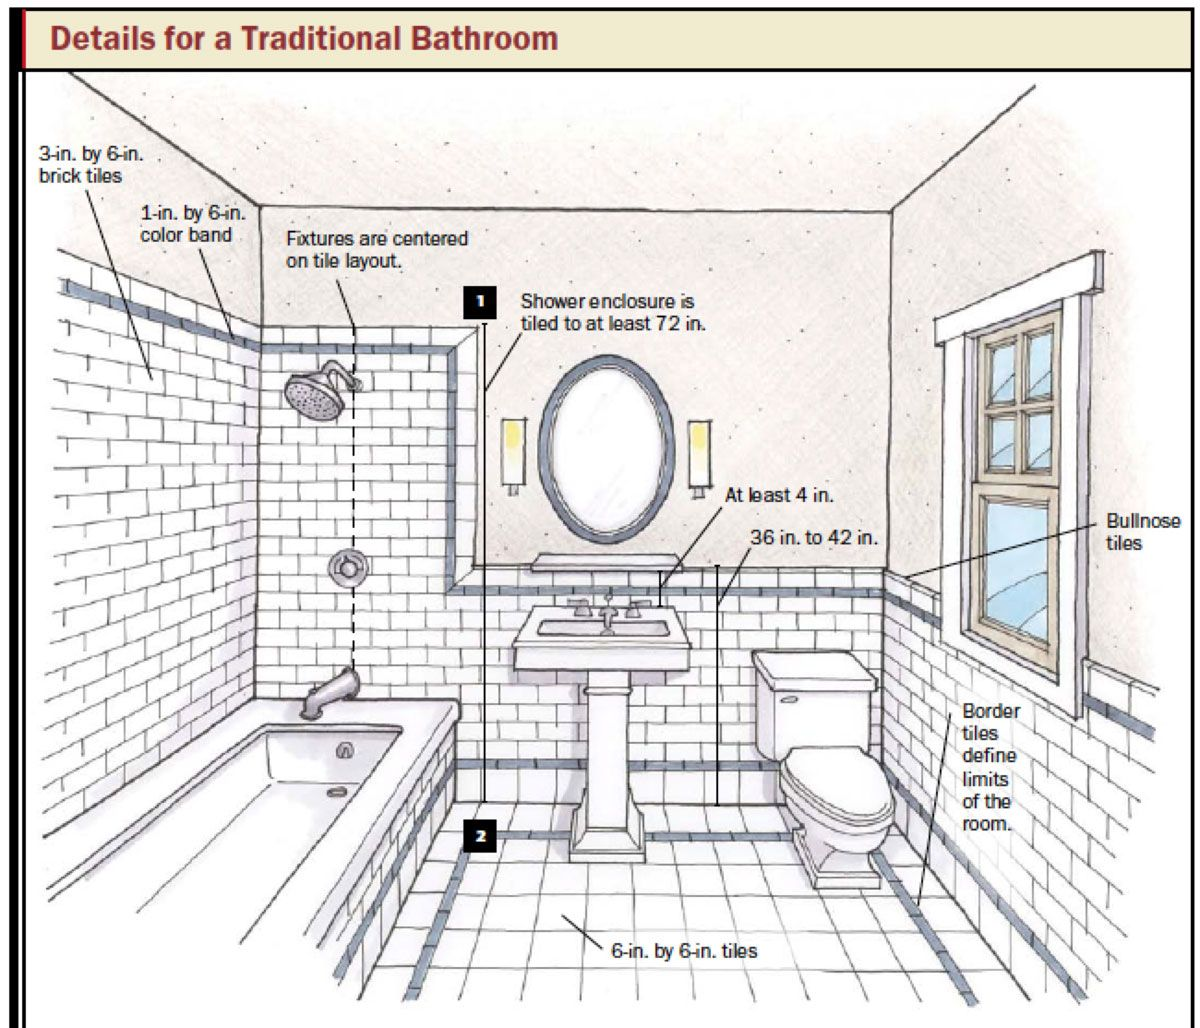 design bathroom floor plan tool | Bathroom and Kitchen Design: How to  Choose Tile and